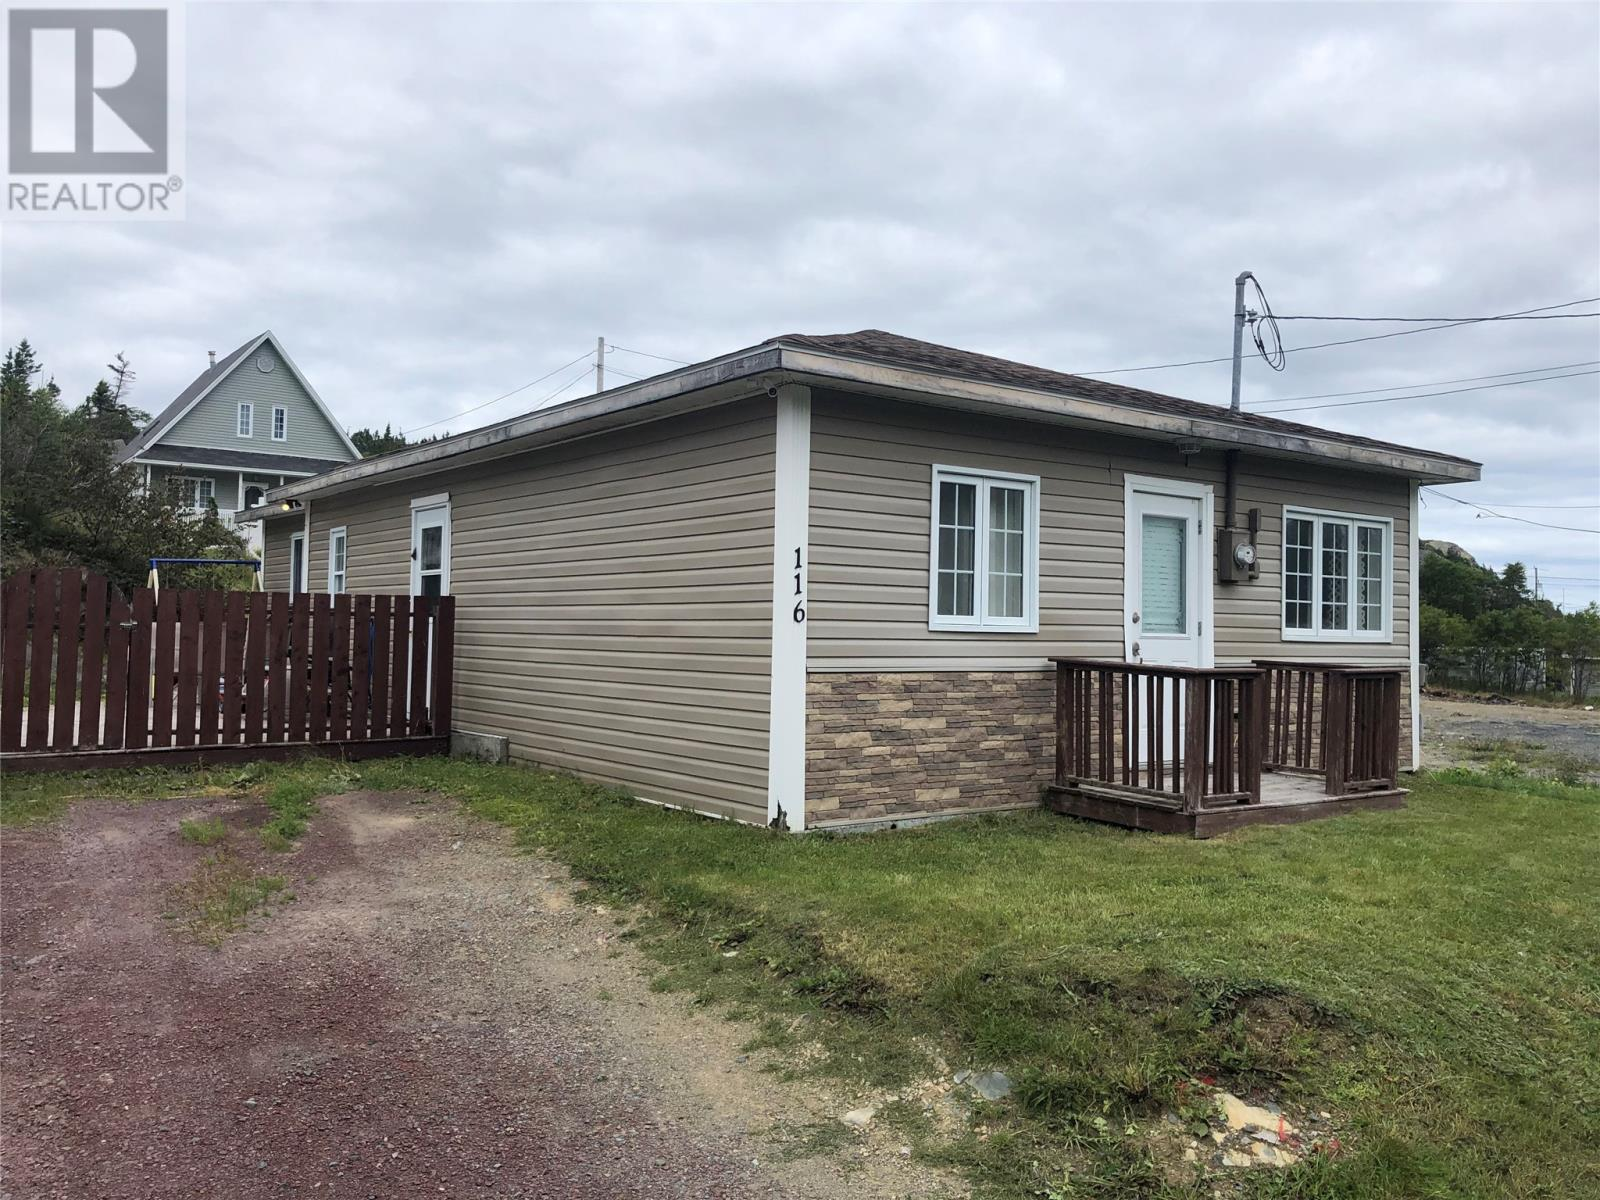 Removed: 114 118 New Harbour Road, Spaniards Bay, NL - Removed on 2020-01-02 05:03:15